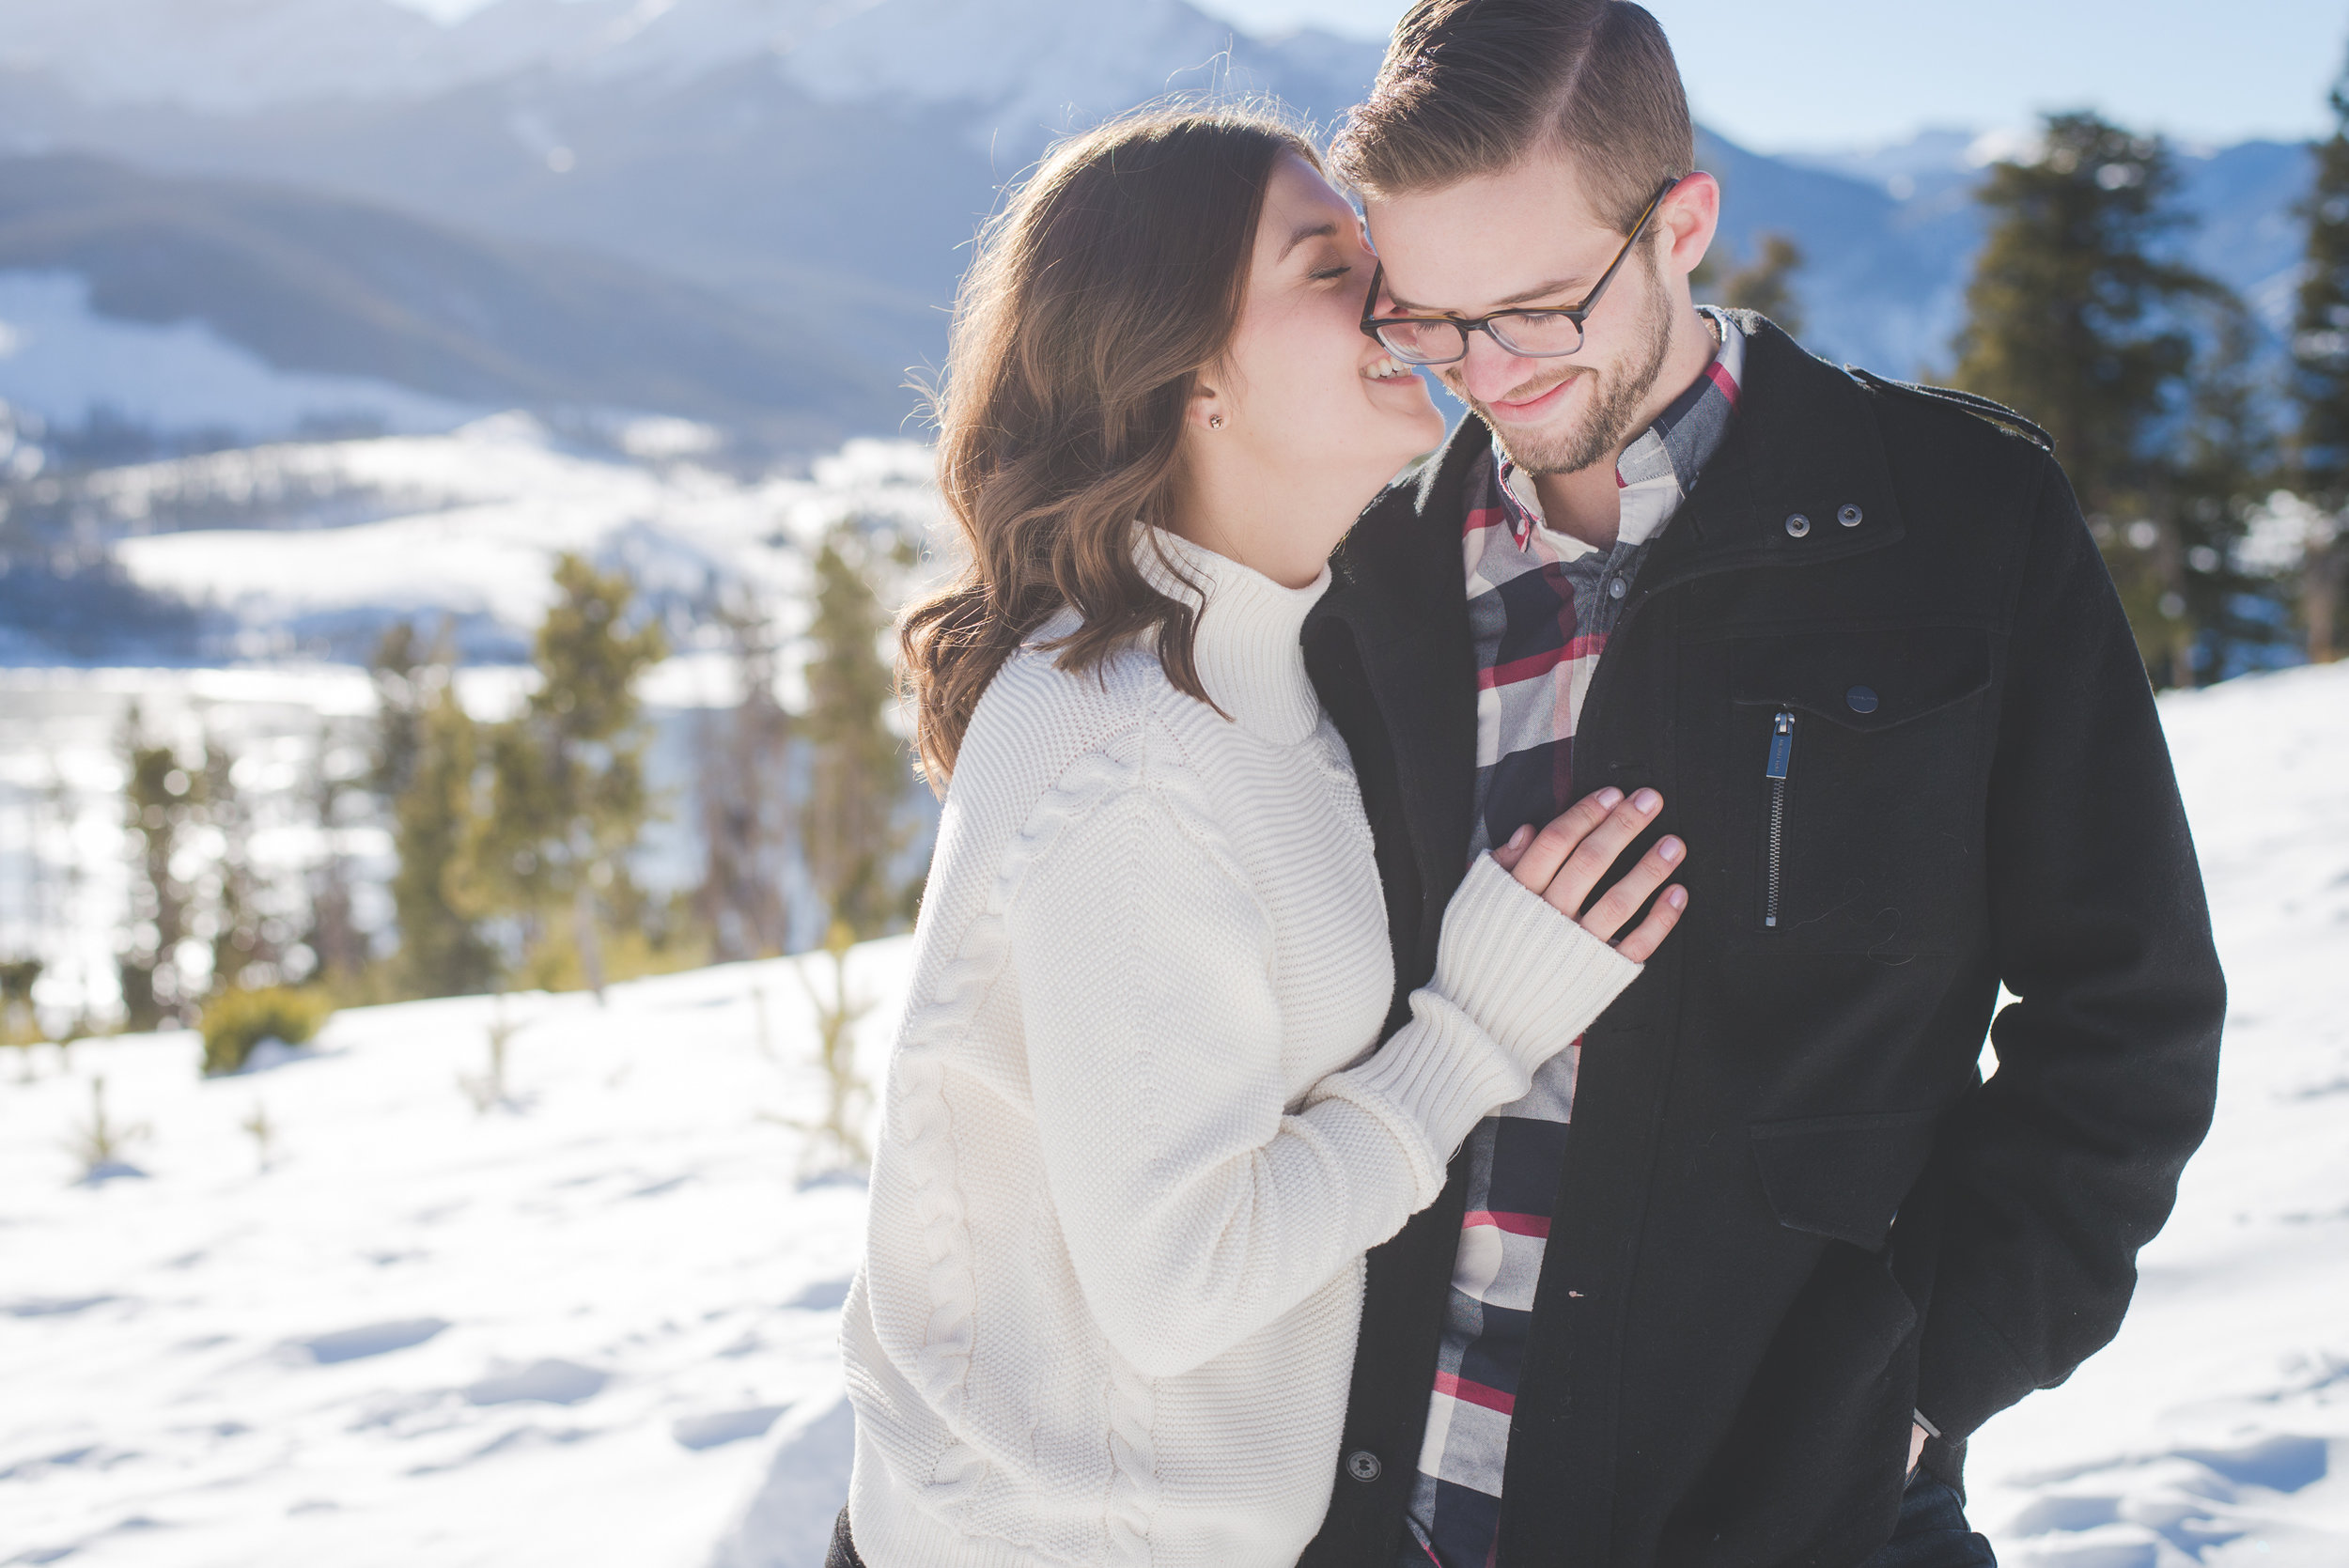 a sweet, romantic moment between engaged couple during their winter mountain engagement shoot in colorado. sapphire point is the perfect location for destination engagement photos!